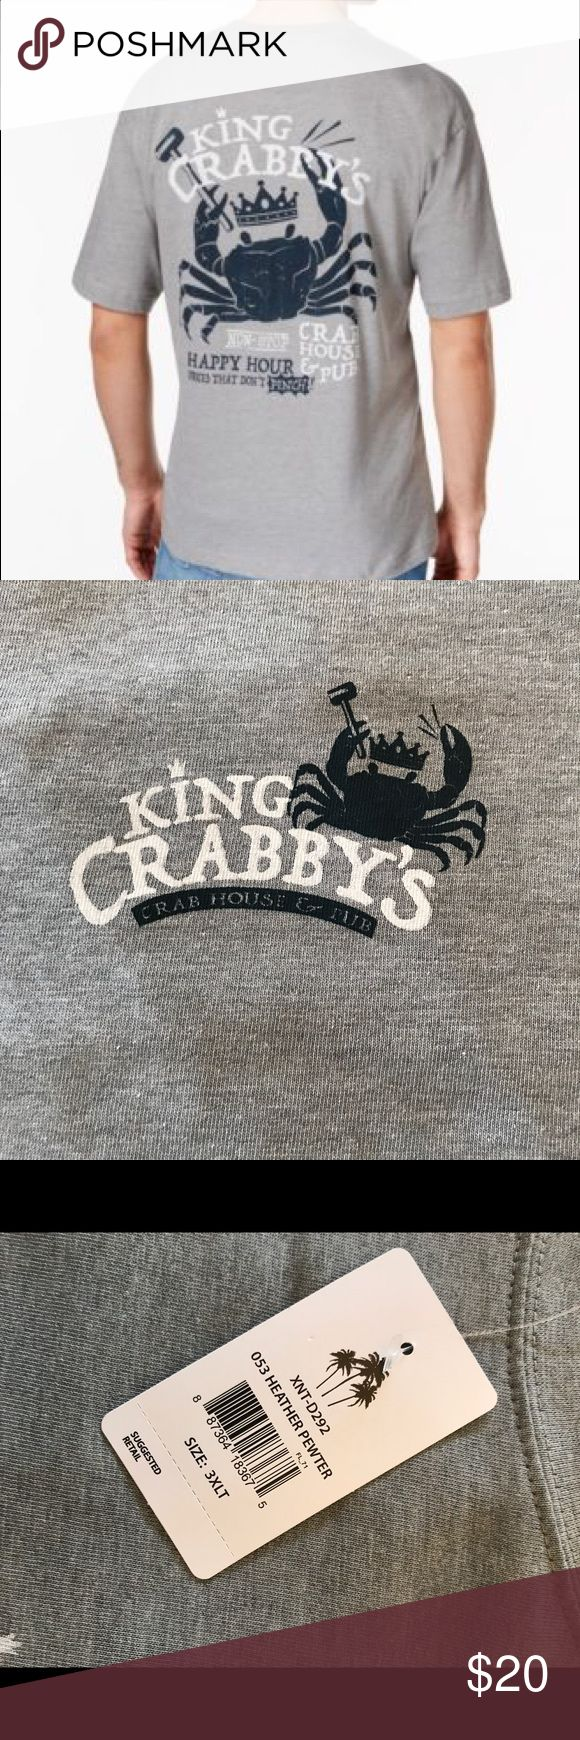 "3XLT and 4XLT Men's T-Shirt ""King Crabby"" b98 The Newport Blue King Crabby Crab House Cotton T-Shirt features screenprint of ""King Crabby's Crab House & Pub"" with a huge crab on back of shirt. Newport Blue's King Crabby Crab House Cotton T-Shirt is made of 90% cotton/ 10% polyester. B98 Newport Blue Shirts Tees - Short Sleeve"